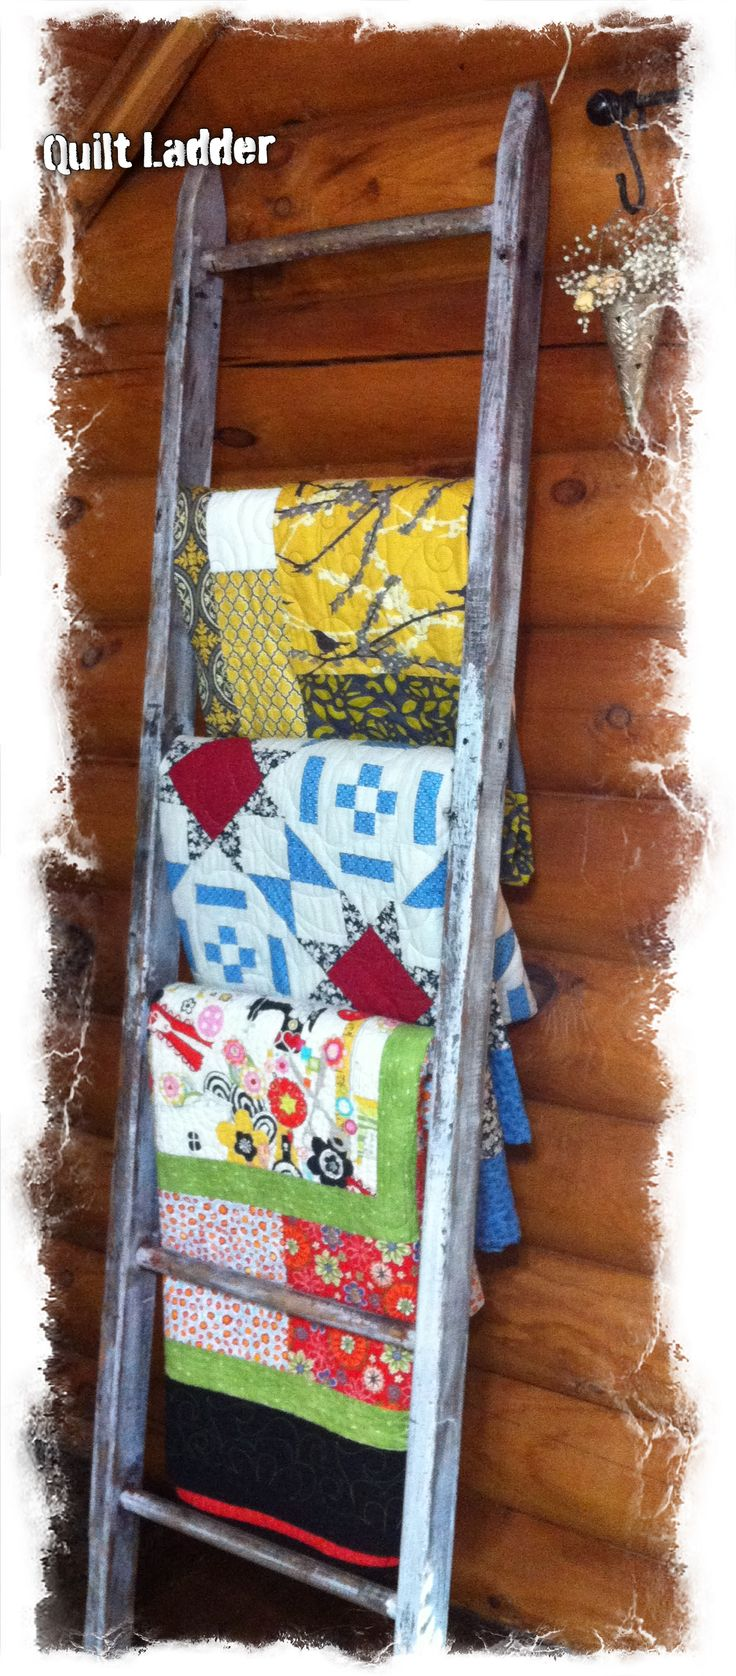 Modern Quilter meets Primitive Country